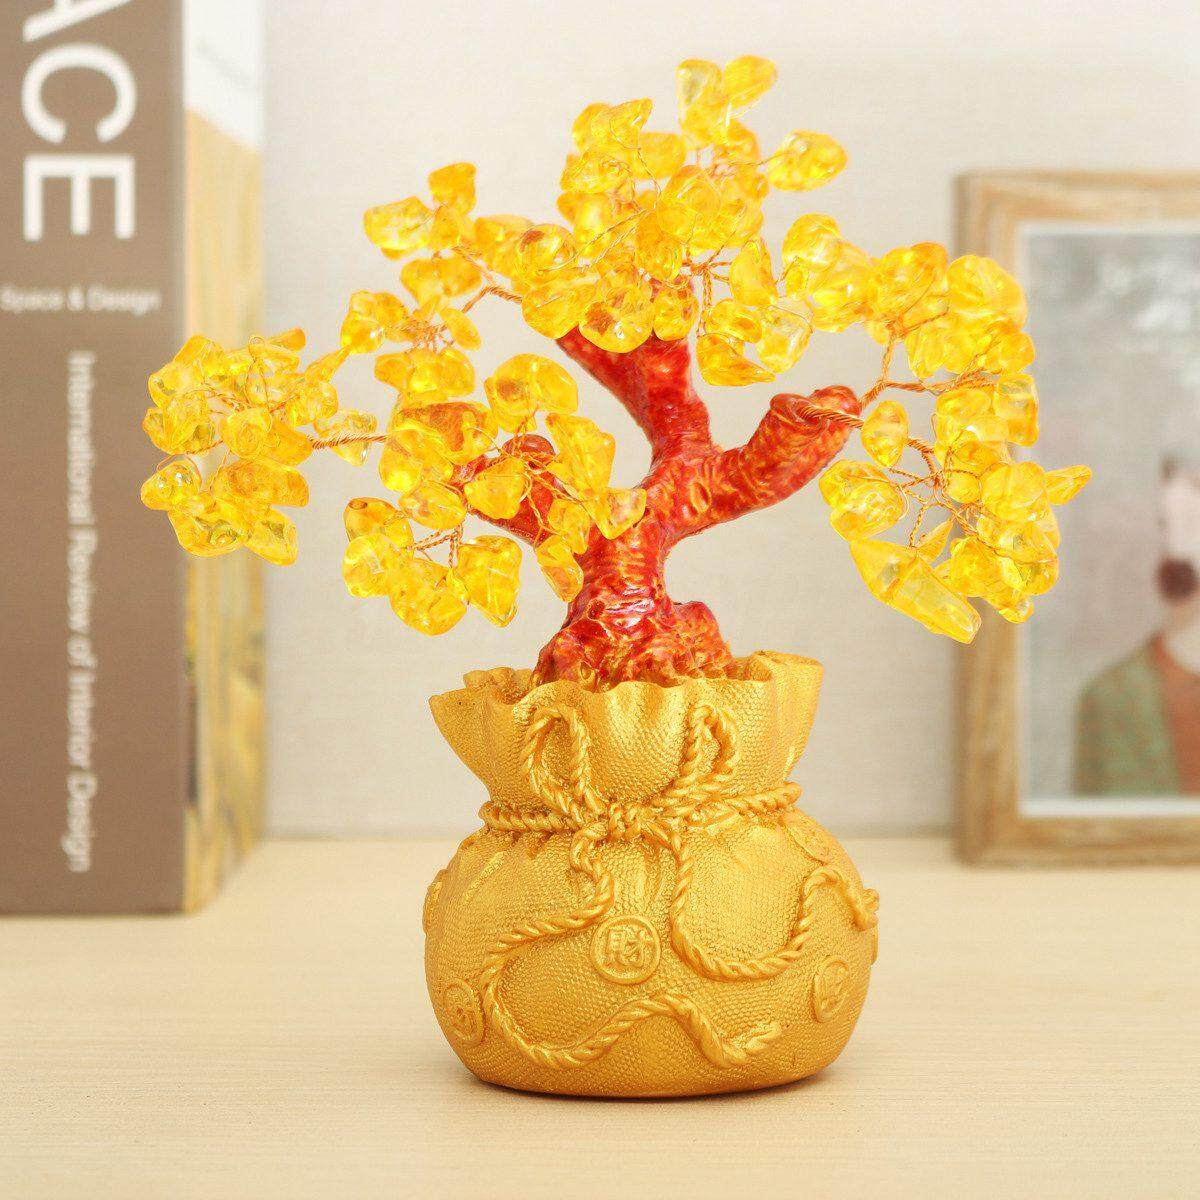 Feng Shui Wealth Lucky Citrine Crystal Gem Money Coins Tree In Money Bag Decor By Sunshineyou.